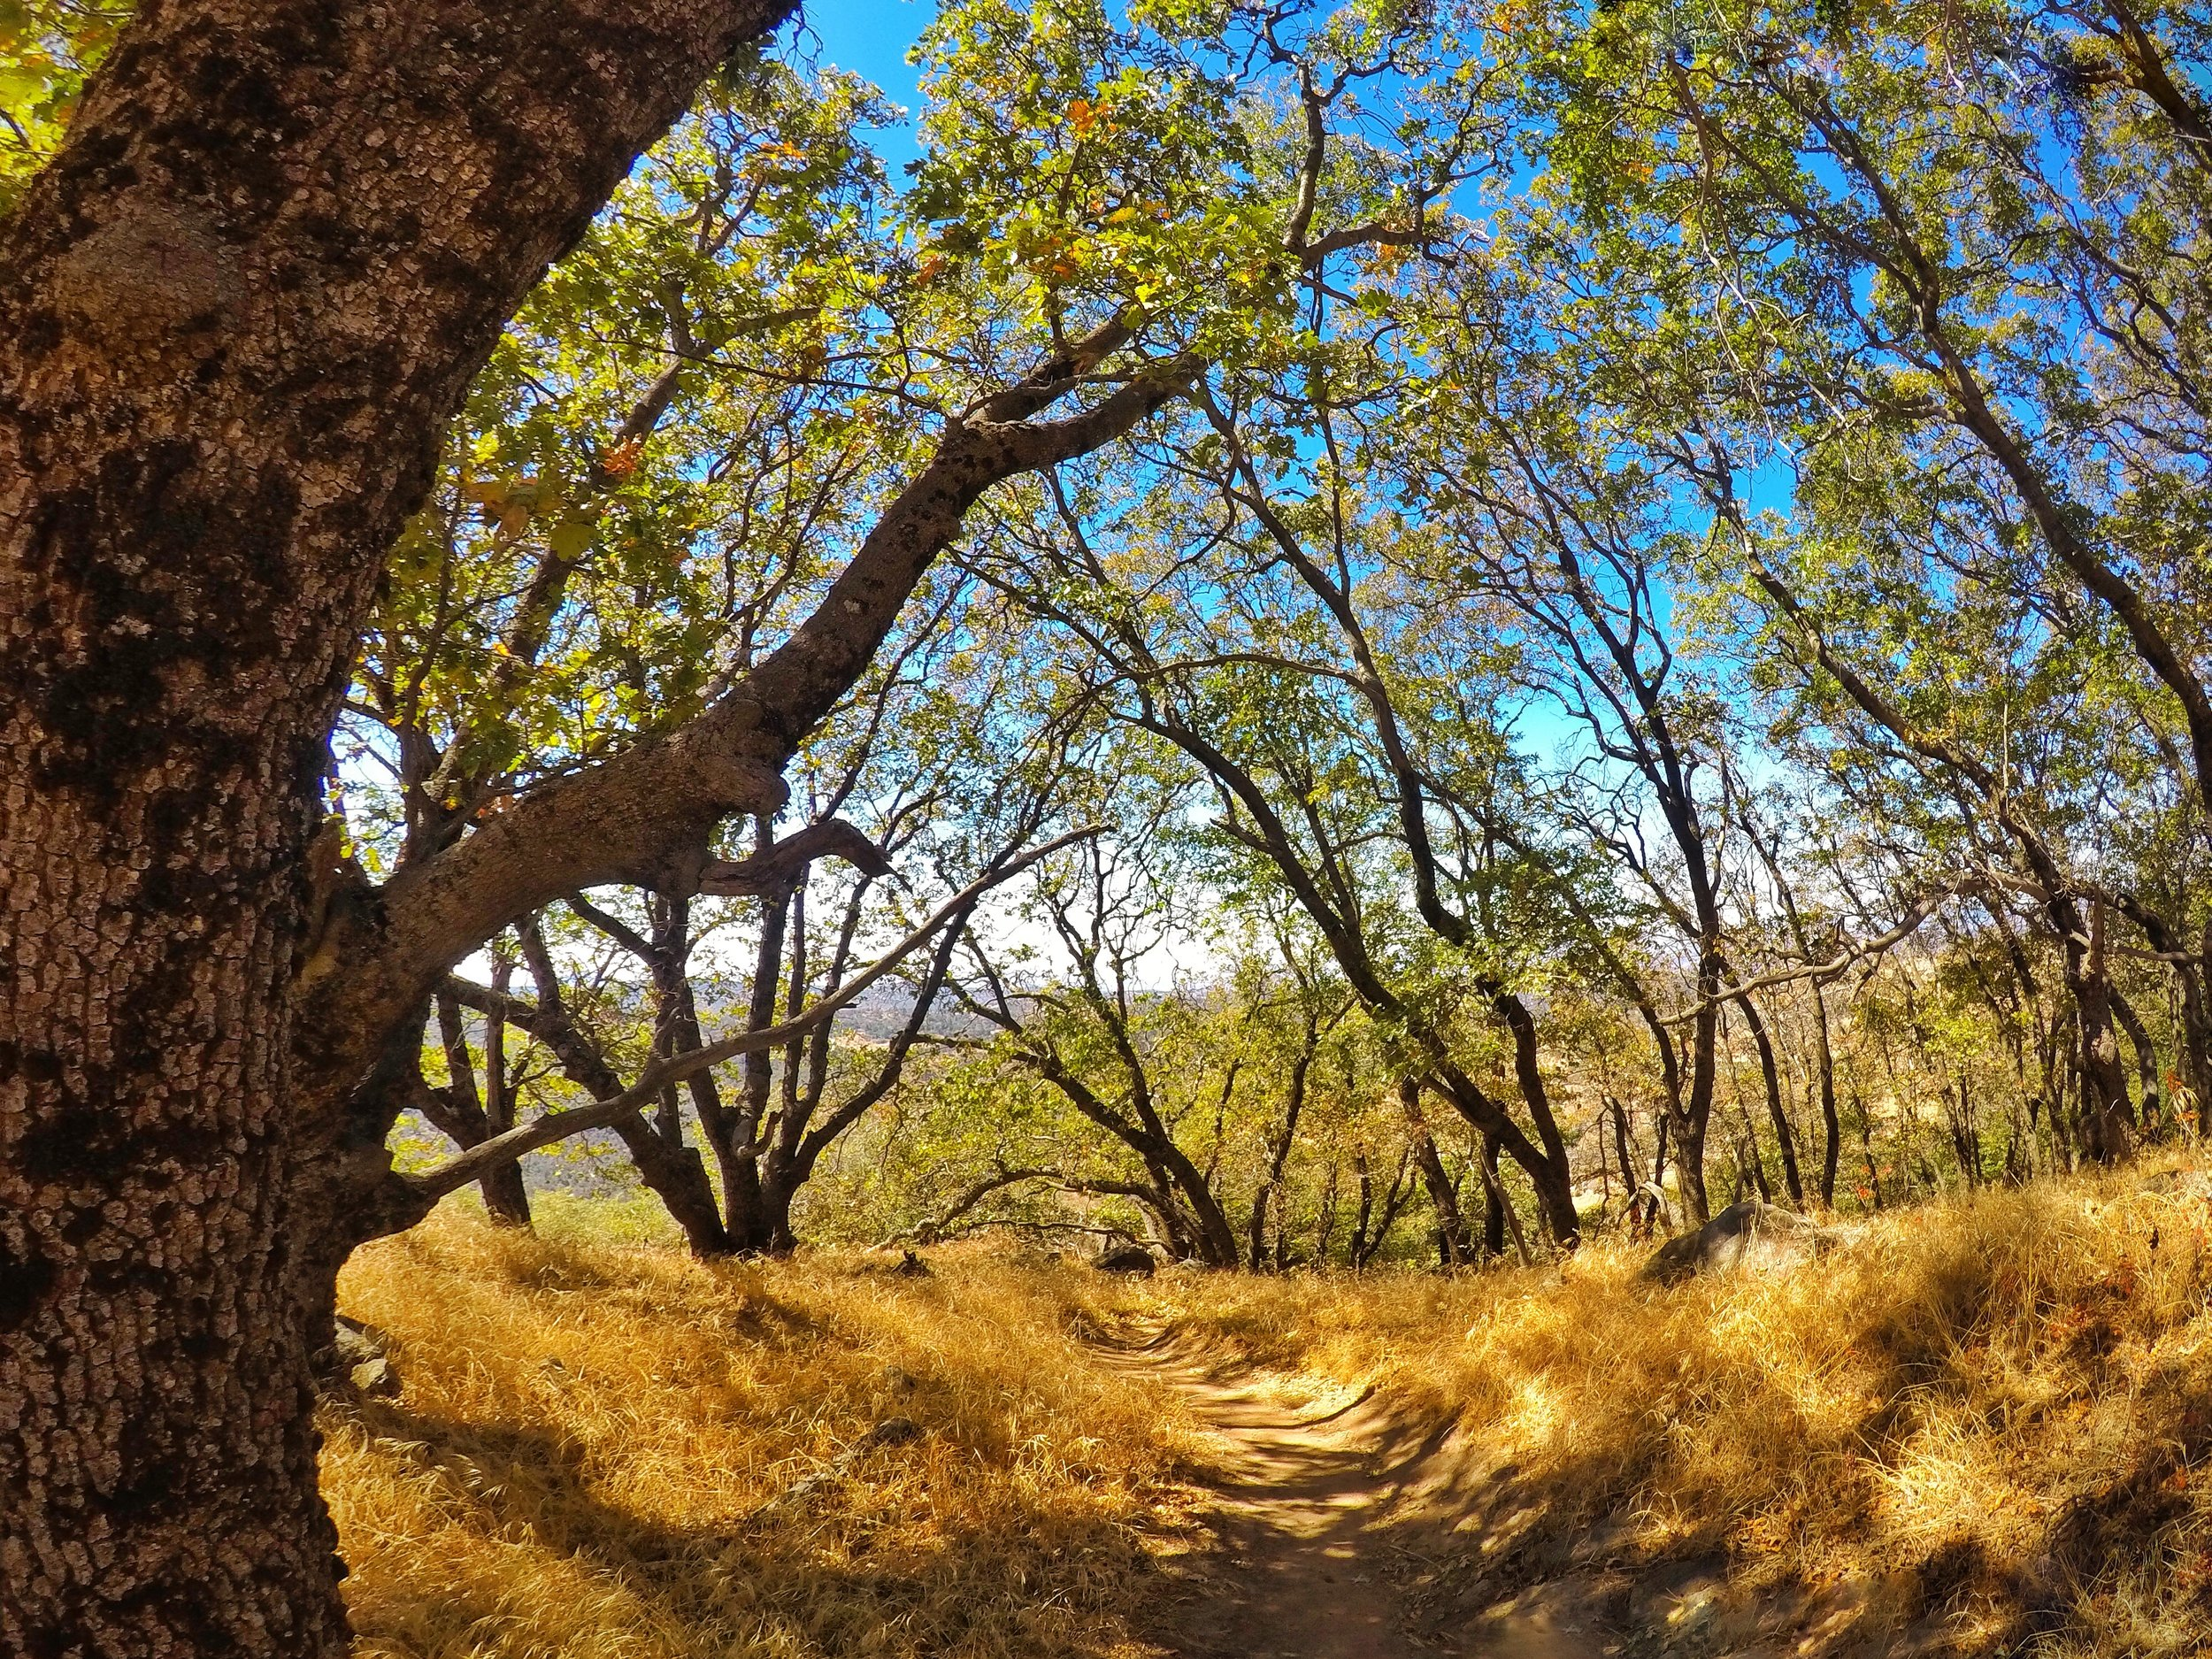 Ascending via the 5 Oaks Trail allows one greater shade, and interesting scenery versus the main Volcan Mountain Preserve trail.